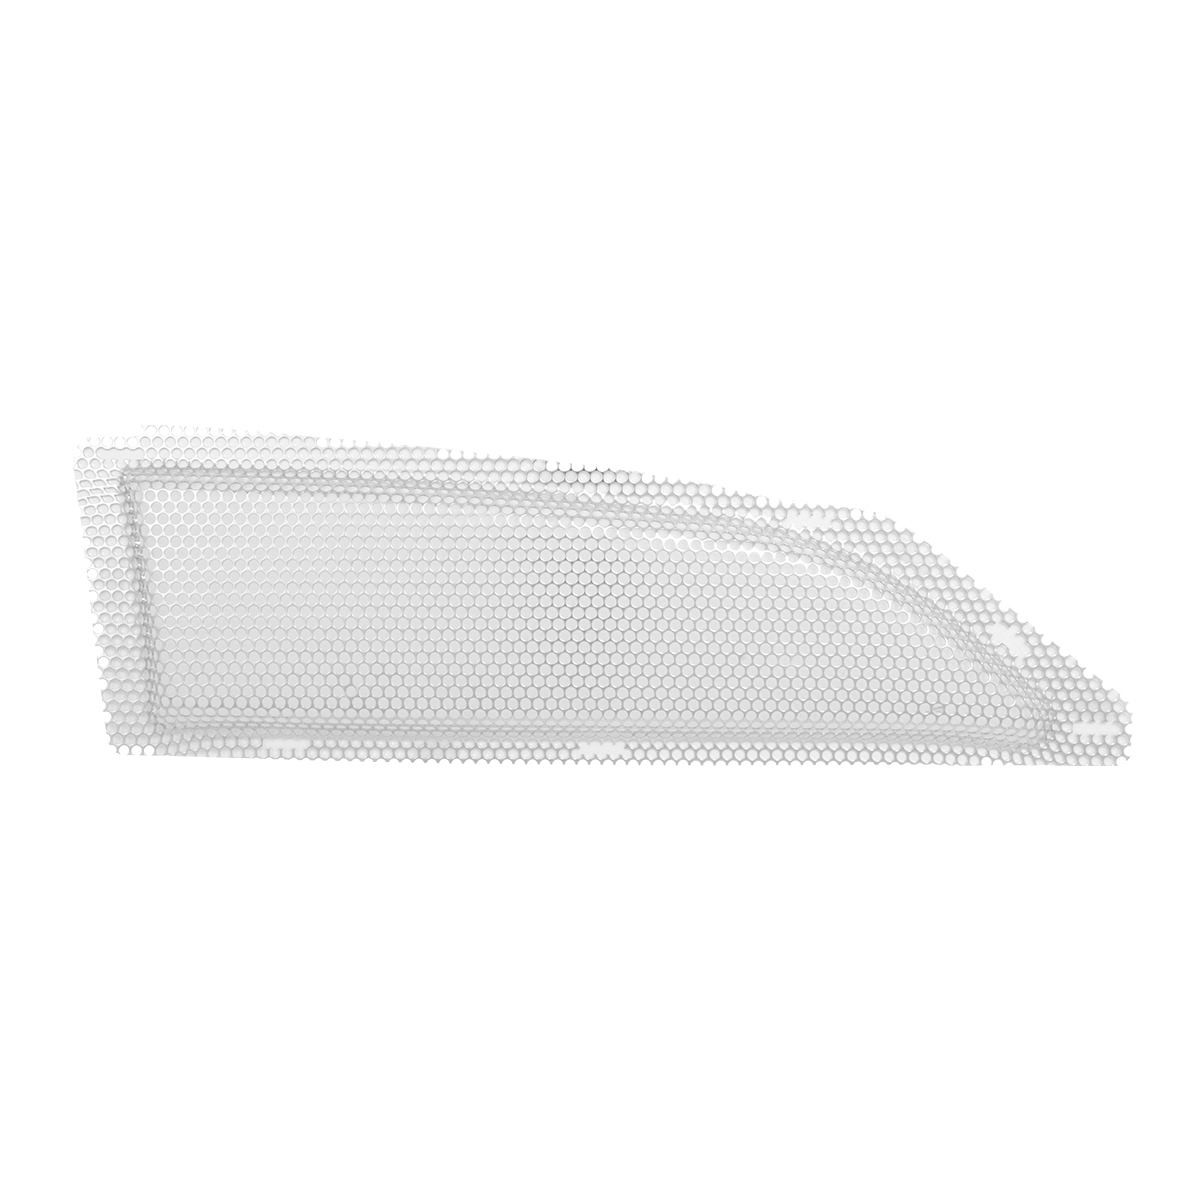 67898 Kenworth T680 Exterior Hood Intake Mesh Screen